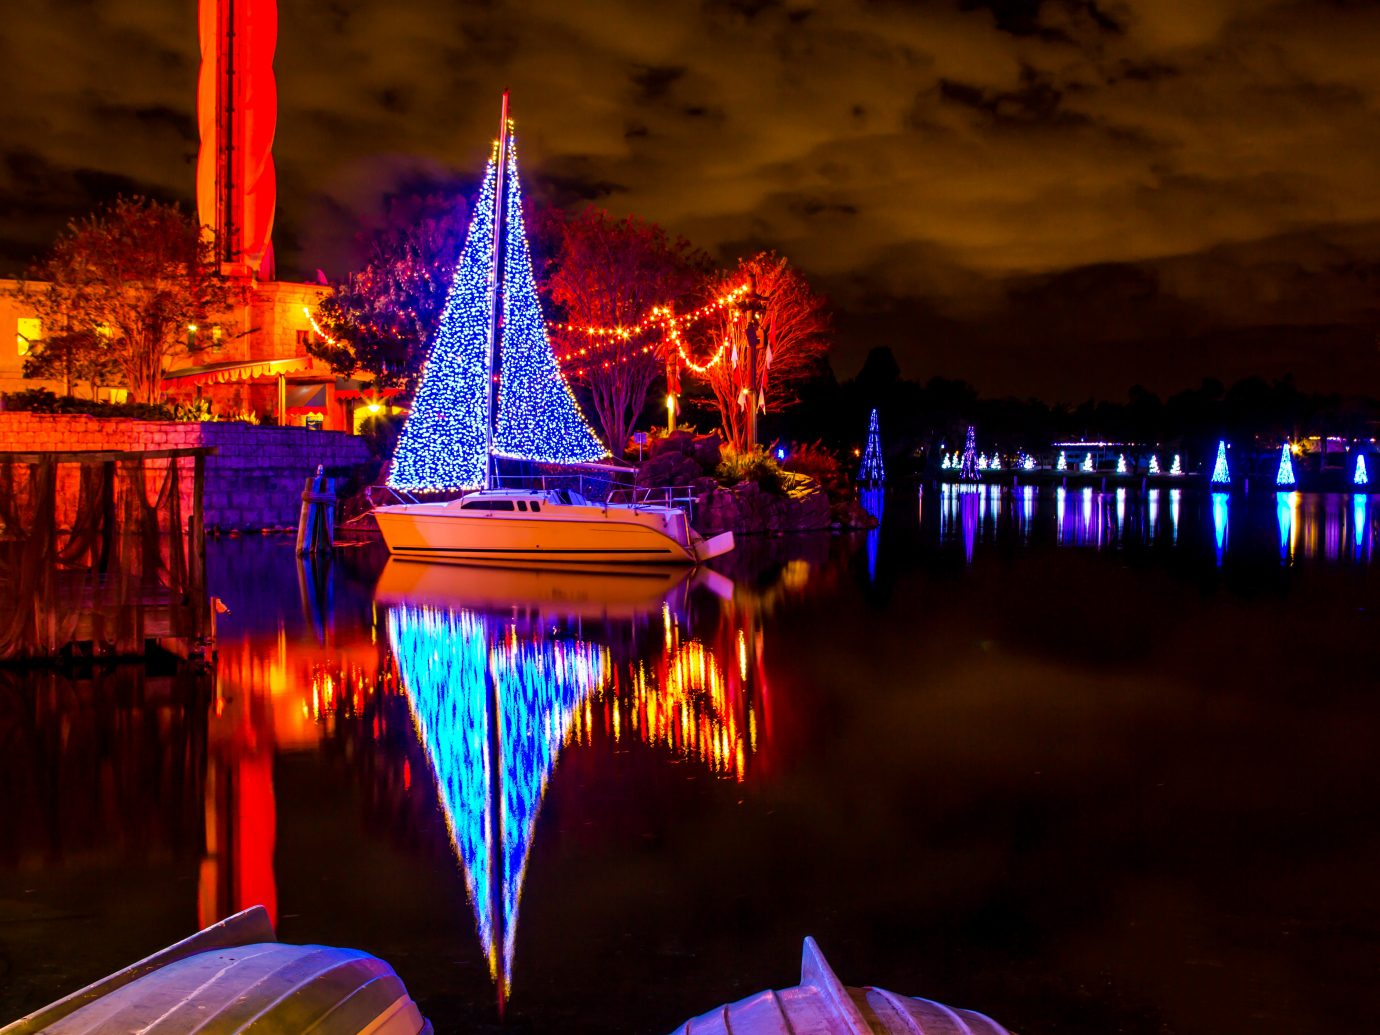 Christmas Lights on a boat in Florida